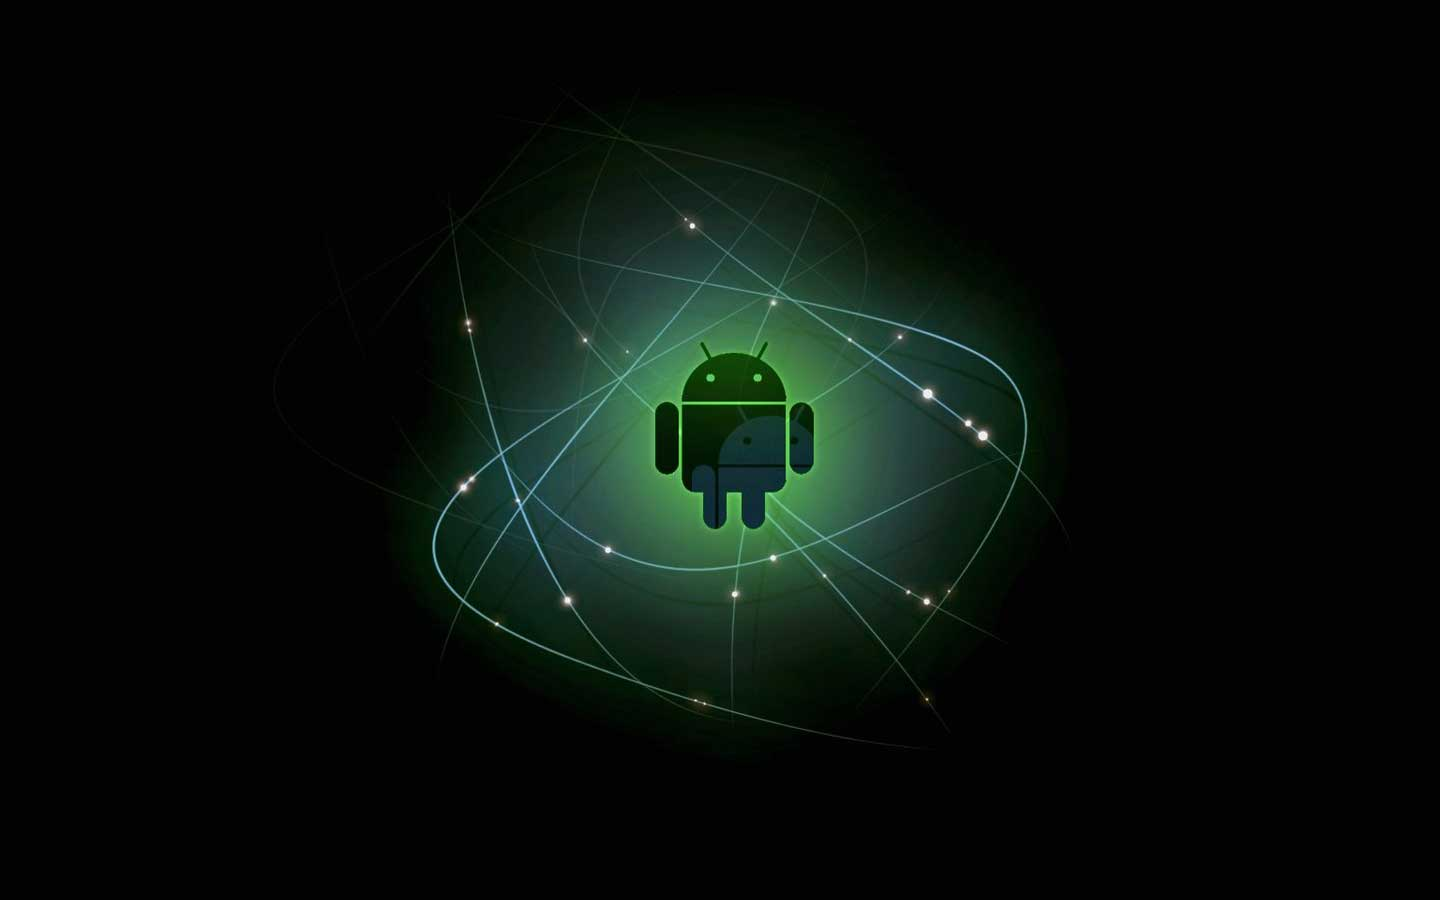 Wallpapers For > Android Wallpapers Hd Black